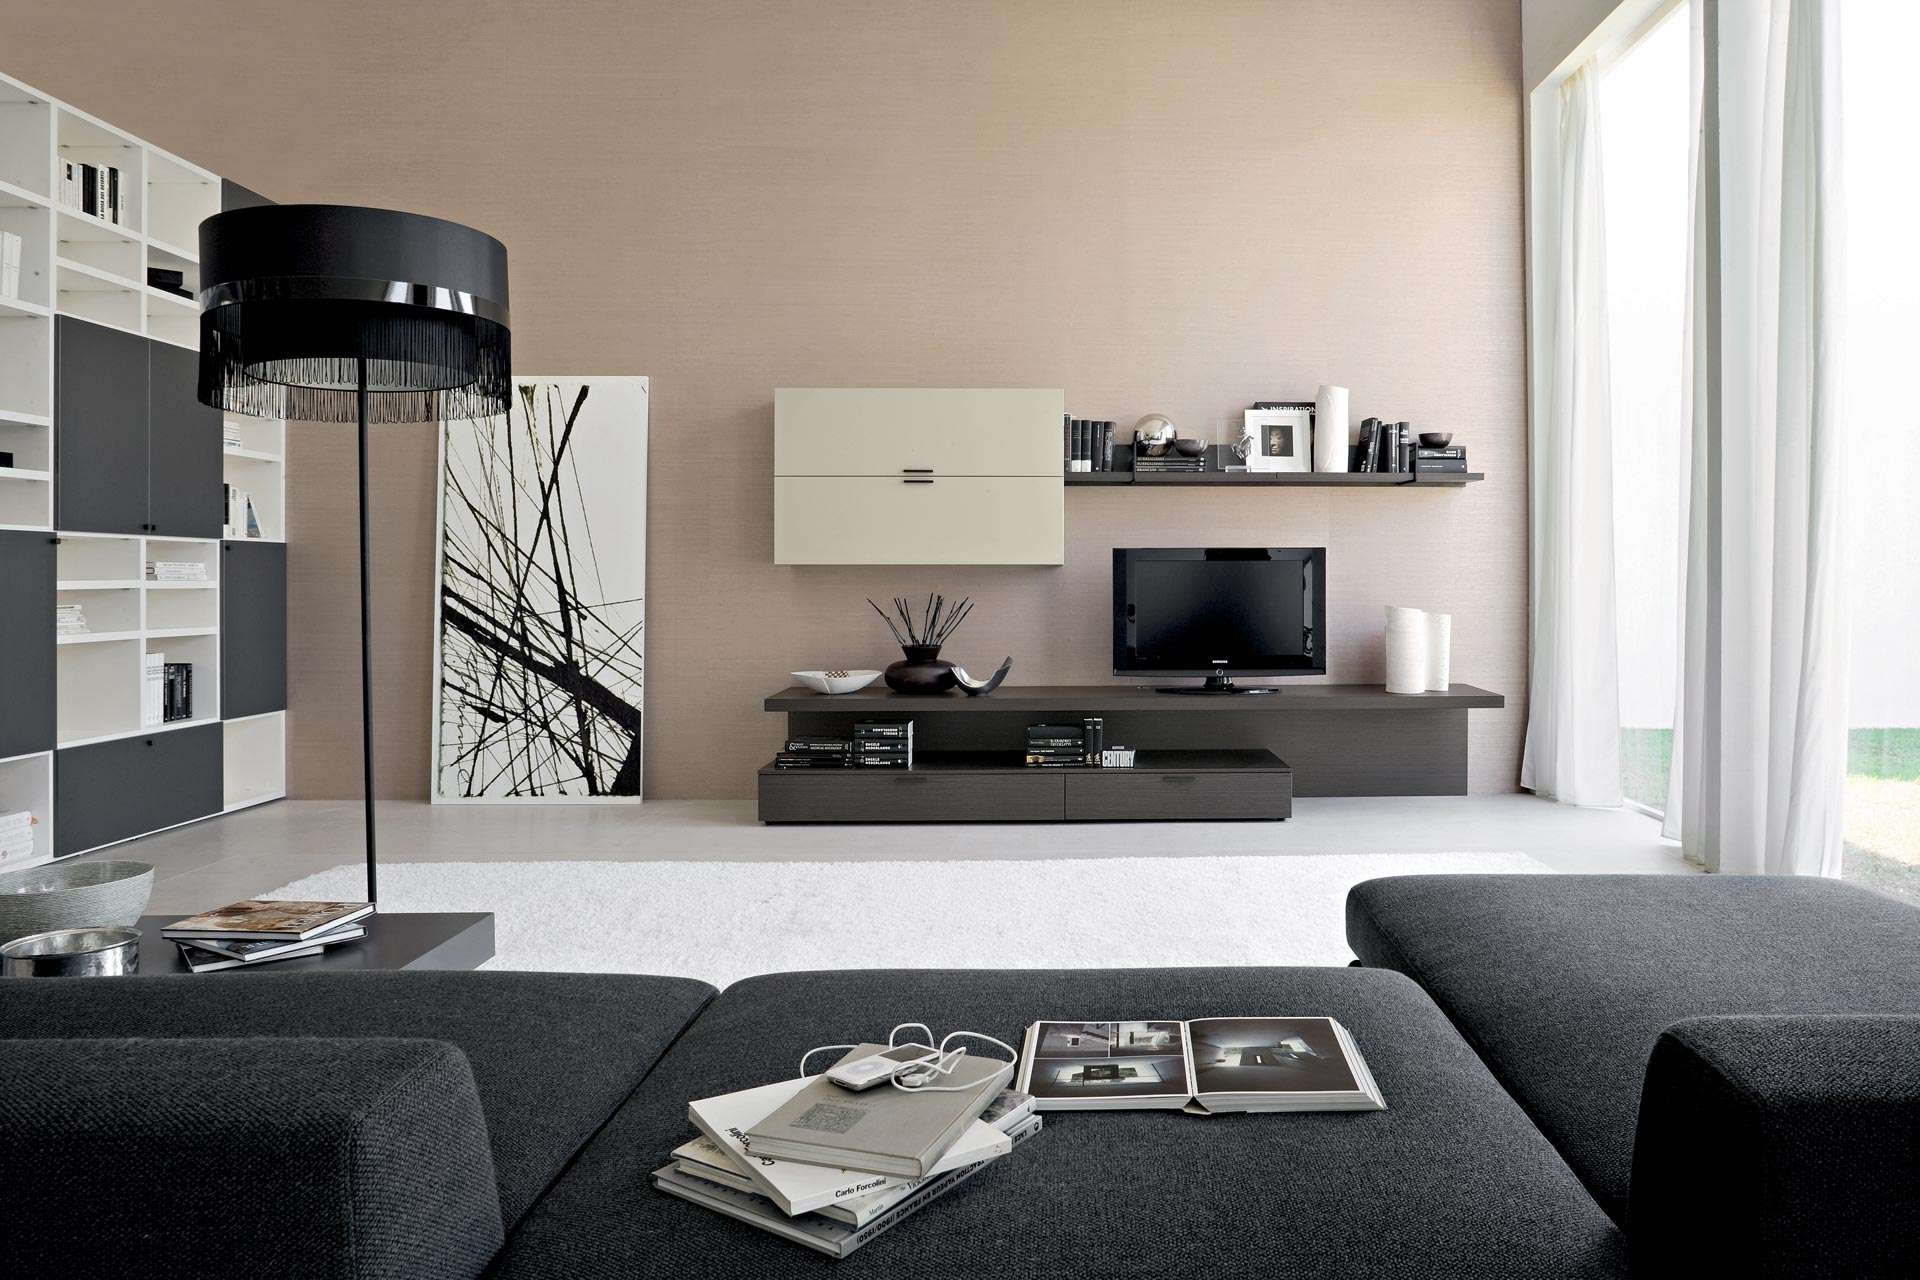 Black Drum Floor Lamp Modern Living Room Ideas Sofa